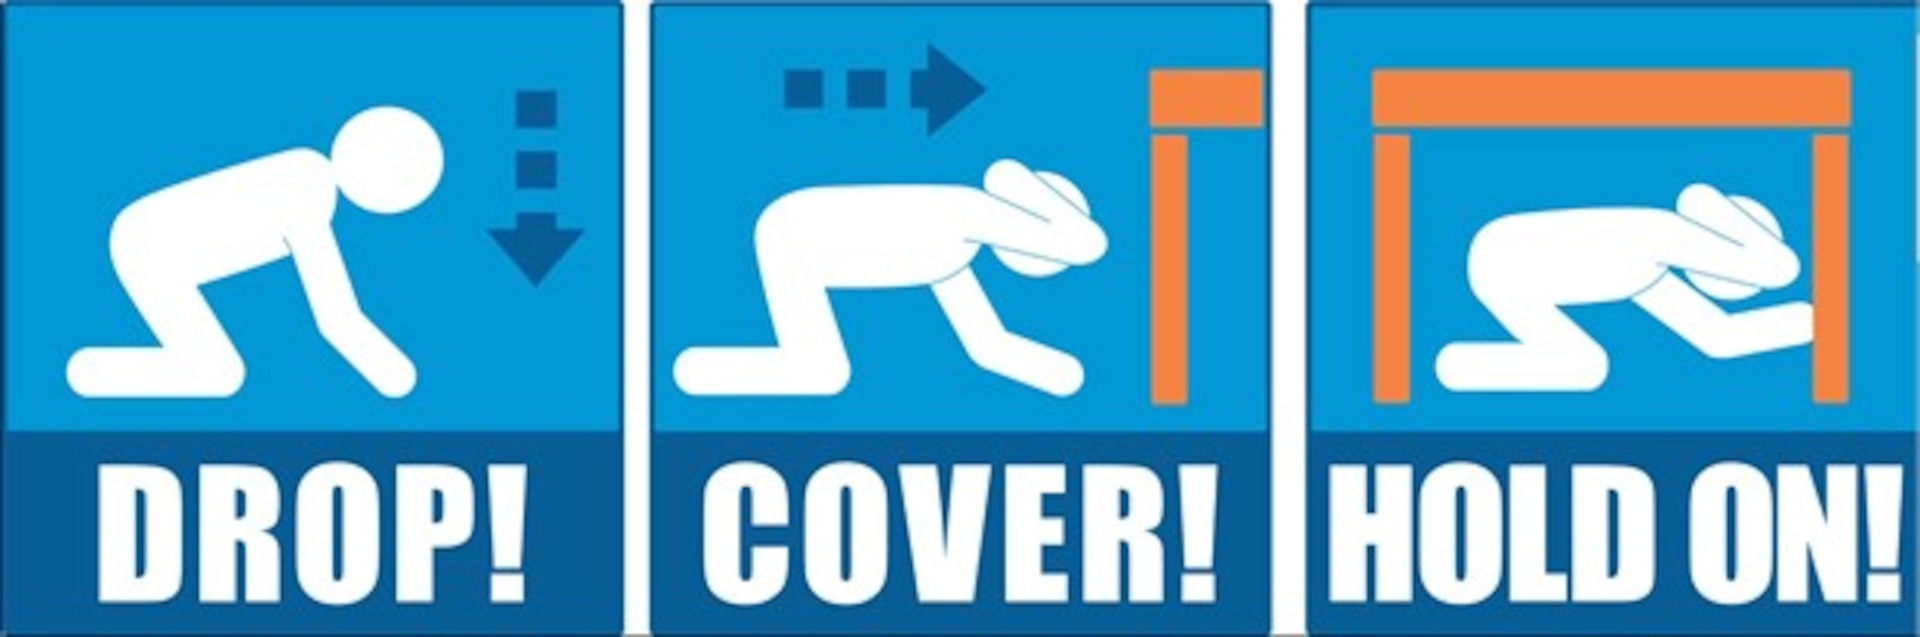 The Great ShakeOut drill: Drop, Cover, Hold On